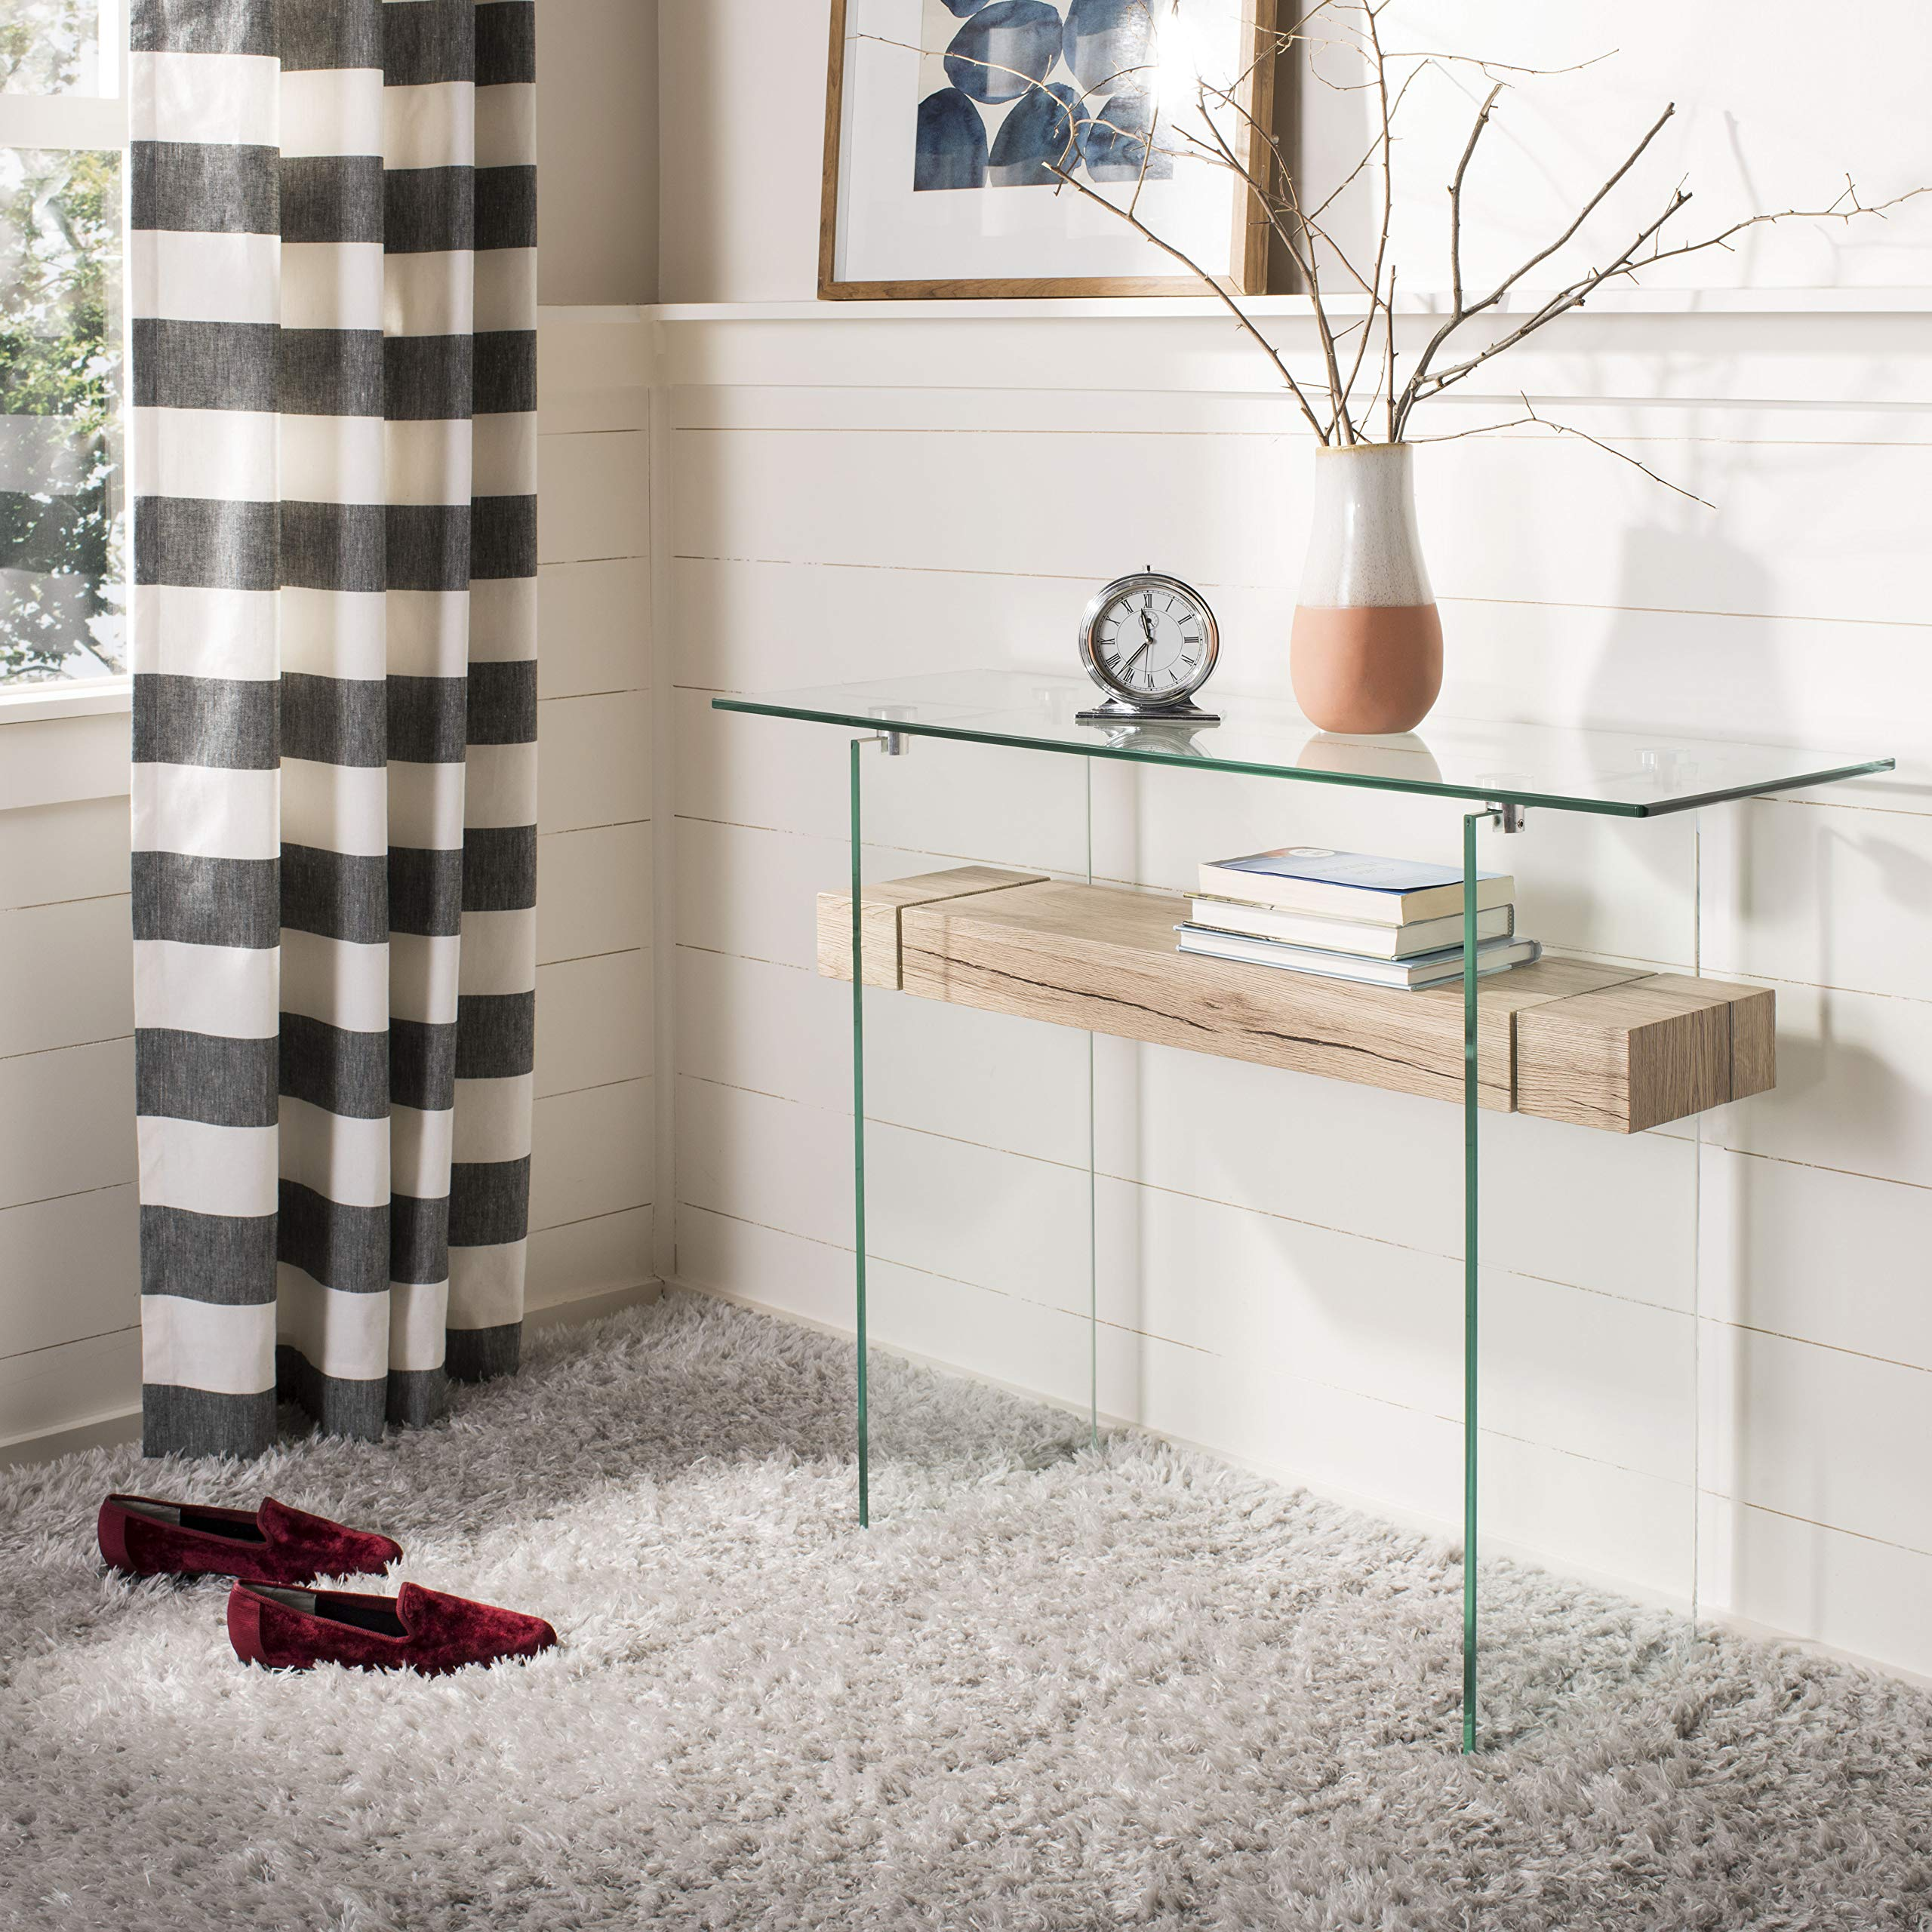 Safavieh CNS7001A Home Collection Kayley Clear and Natural Rectangular Modern Glass Console Table, by Safavieh